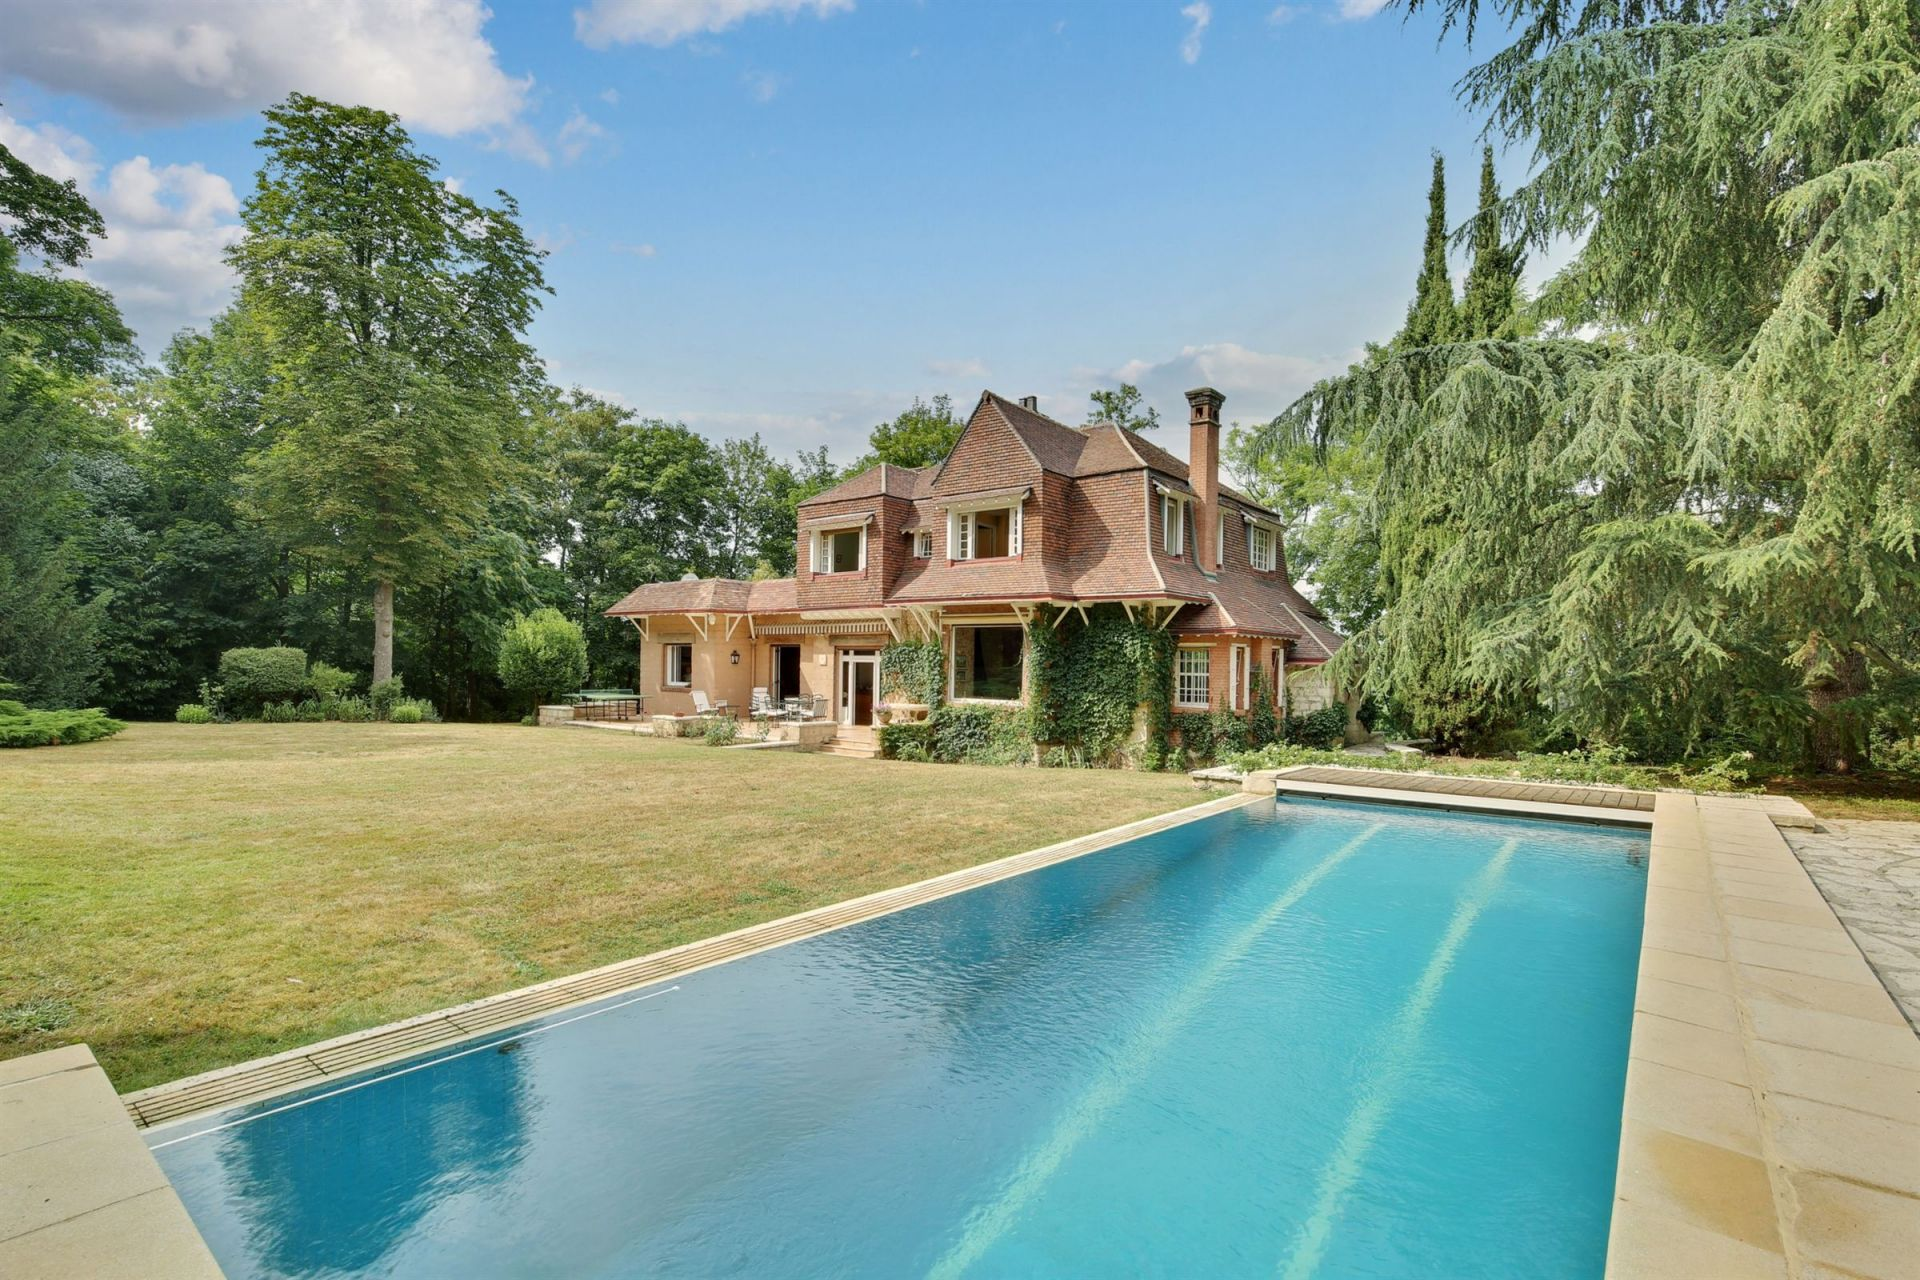 Sale Luxury house 8 rooms 4 bedrooms Louveciennes (78430)